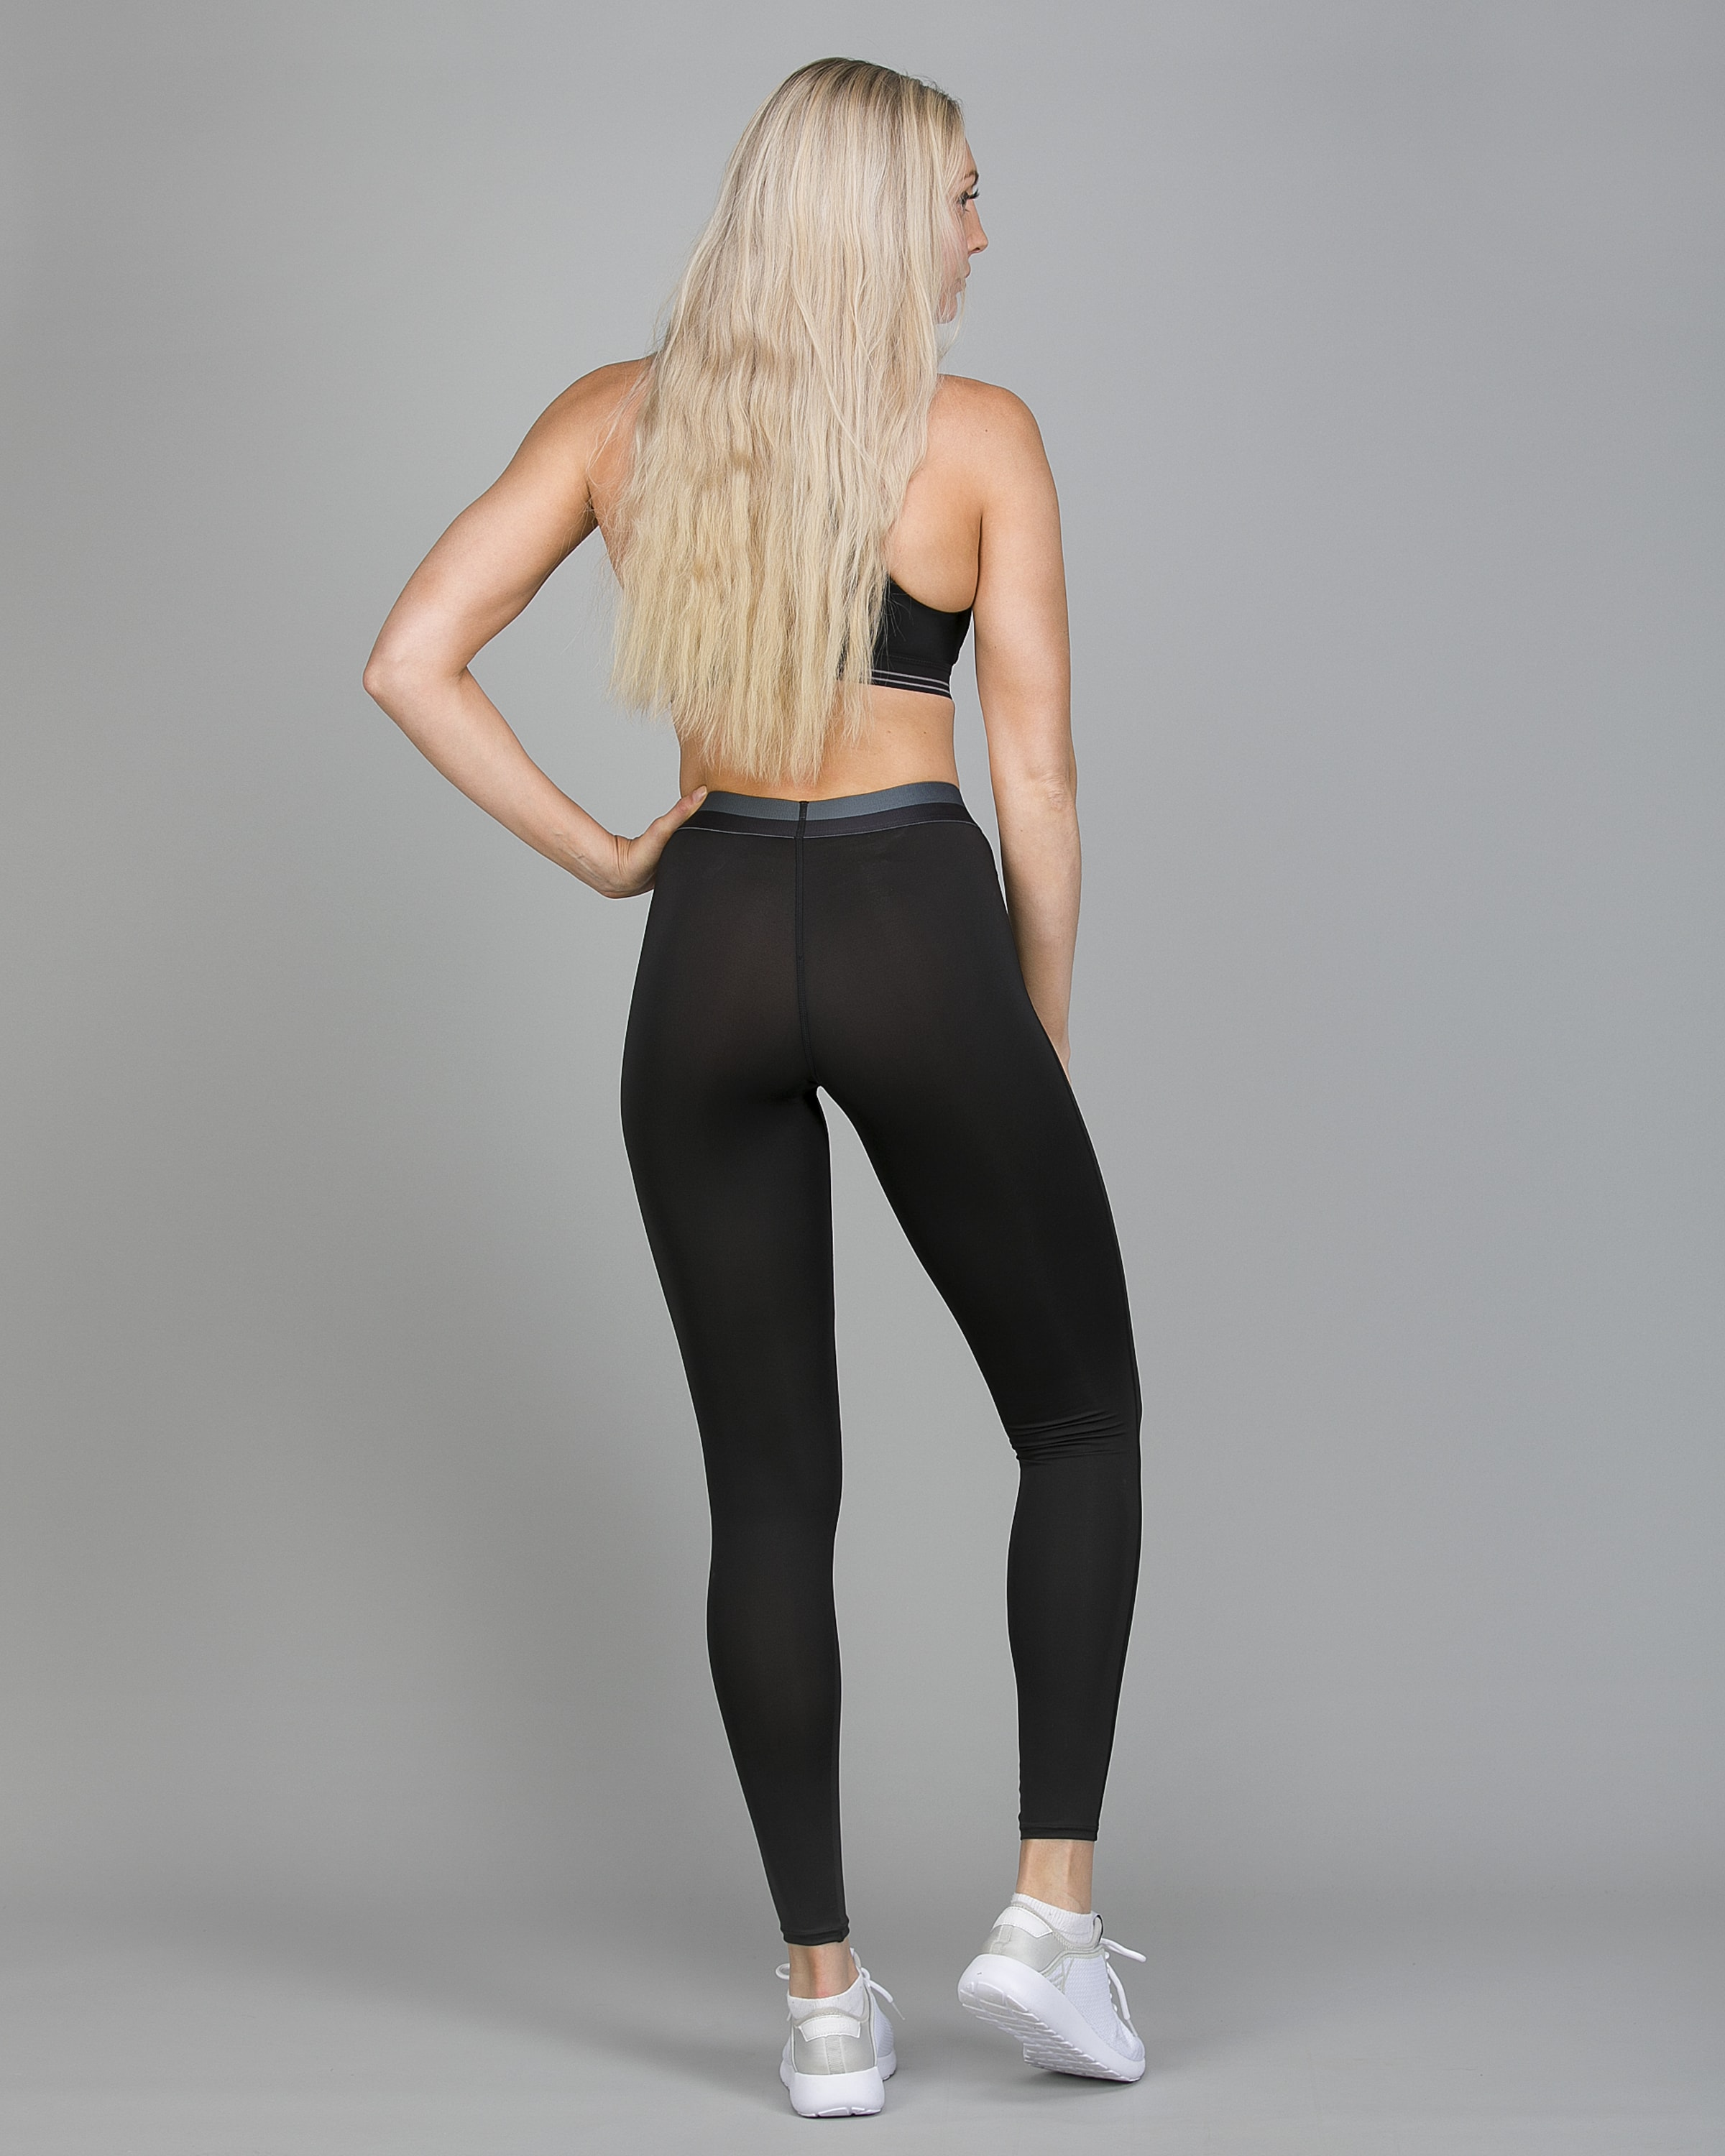 Shock Absorber Active Branded Legging S06TE and Ultimate Run Bra S5044 c